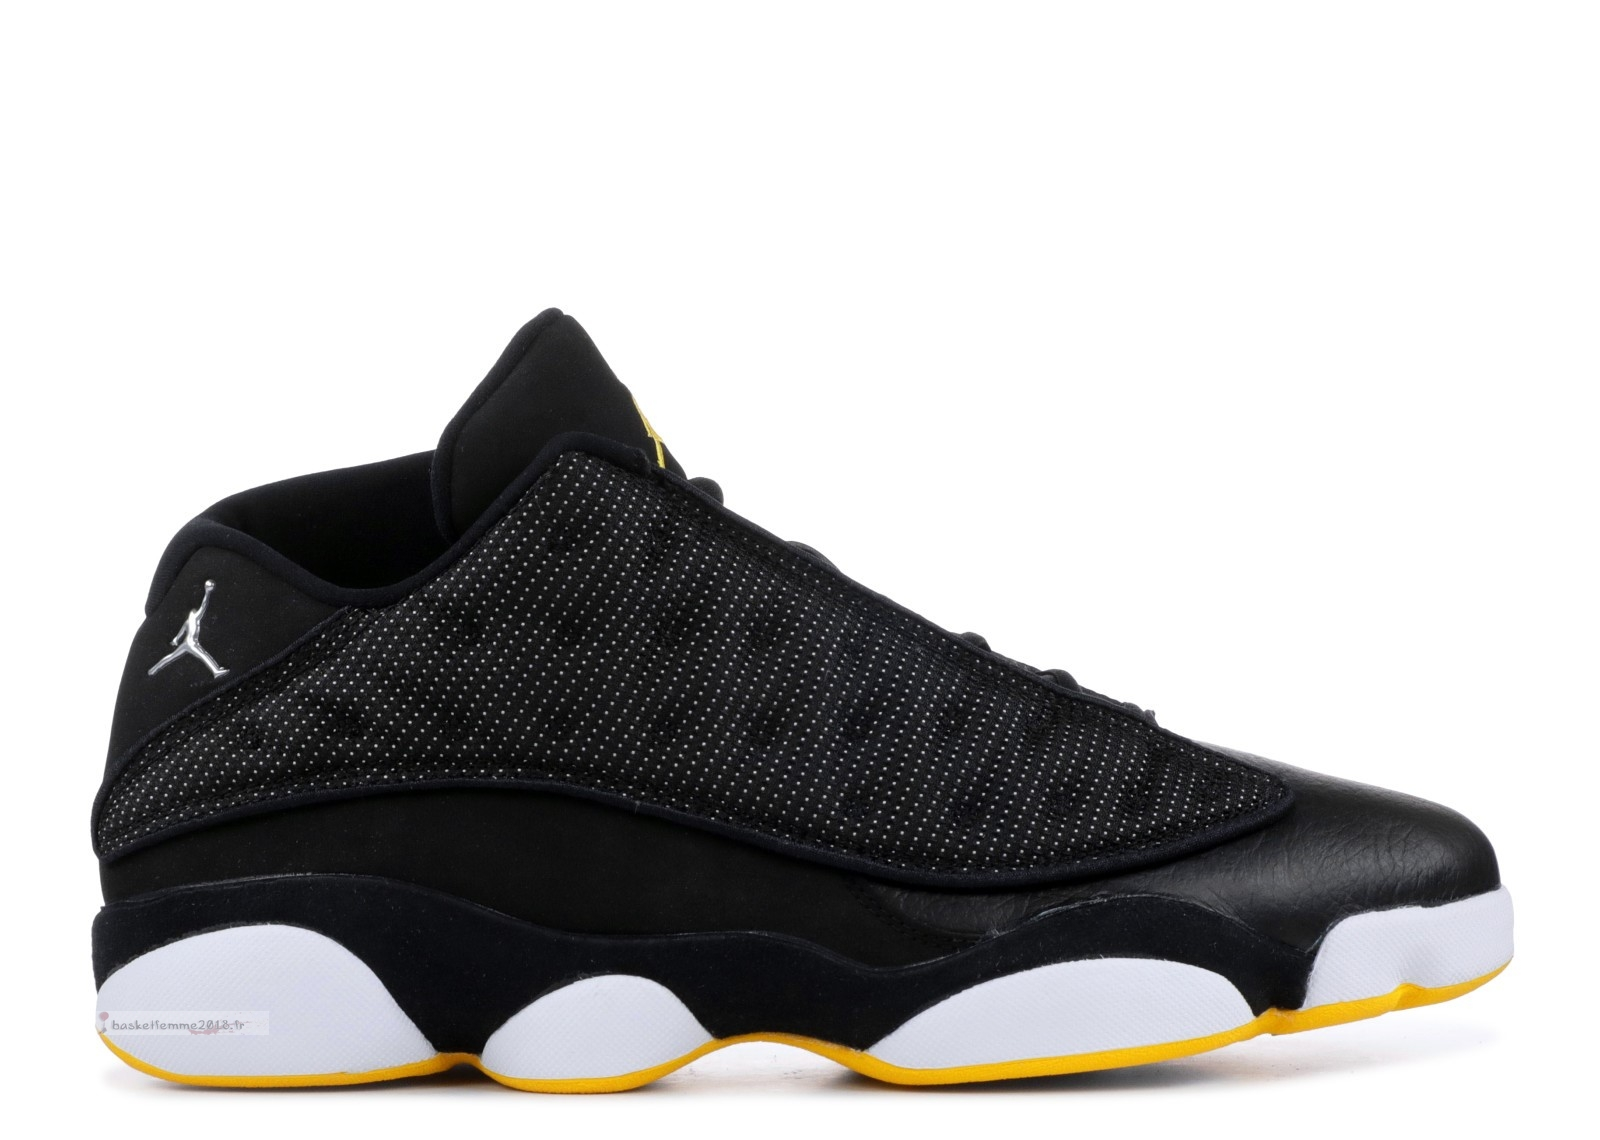 Air Jordan 13 Retro Low Noir Jaune (310810-001) Chaussure de Basket